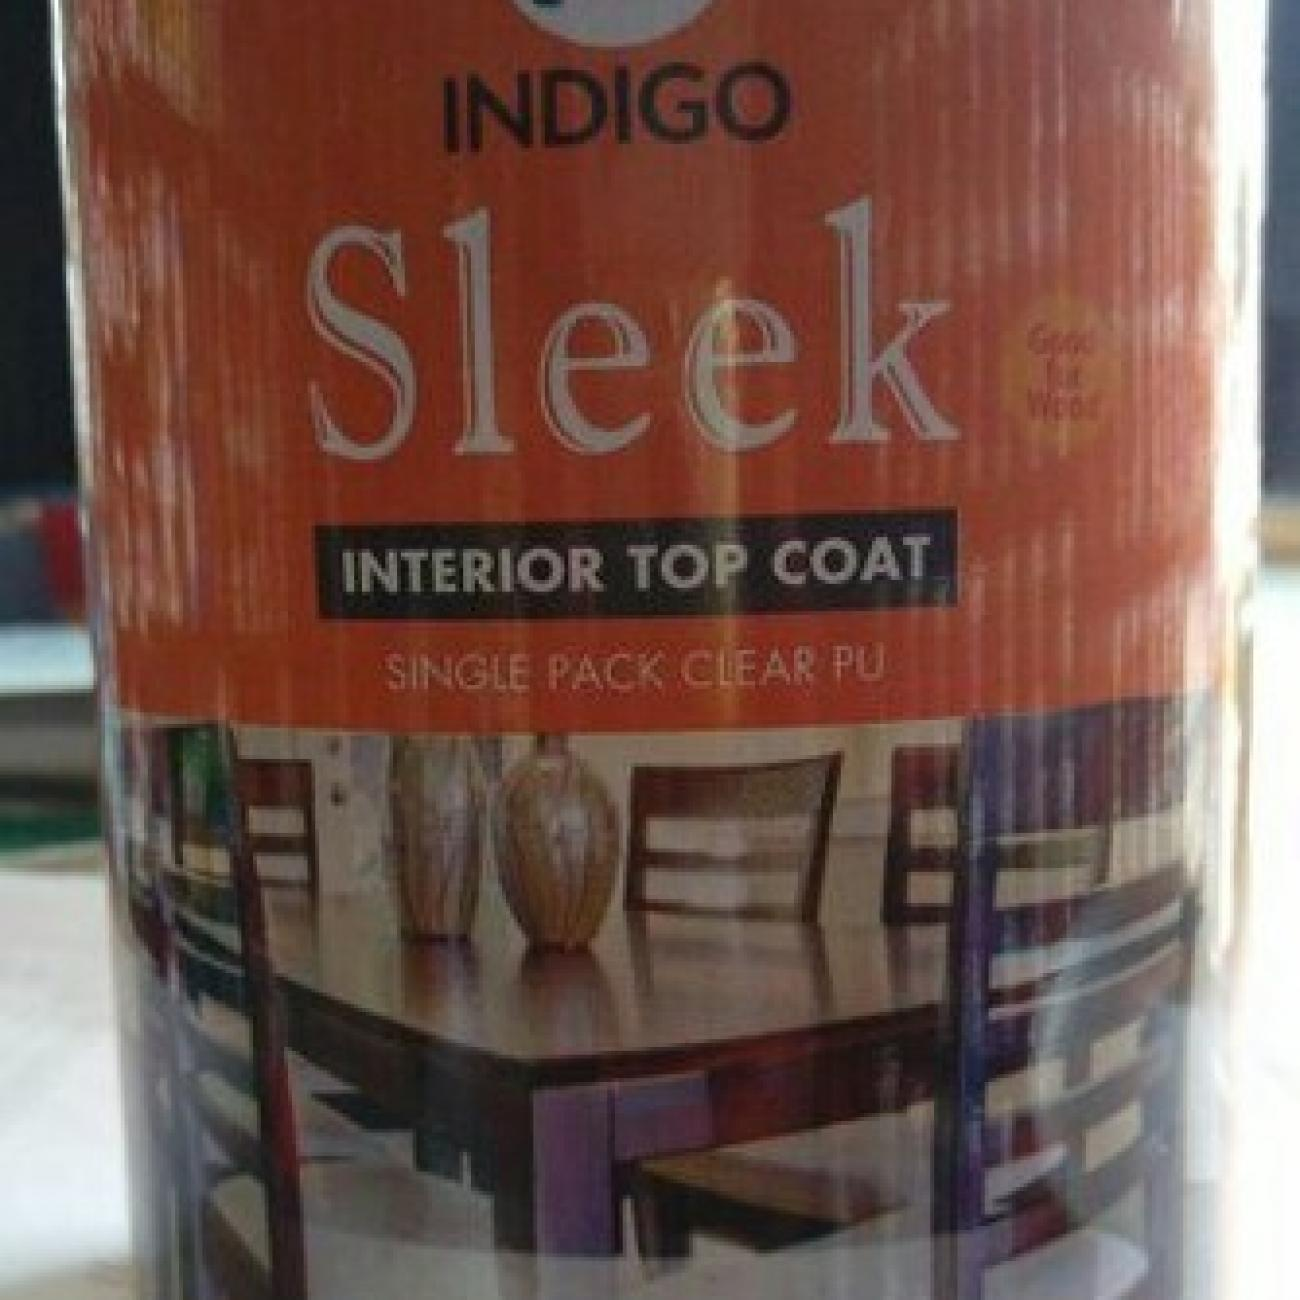 Clear Oil Based Paint Sleek Single Pack PU (Indigo Paints)